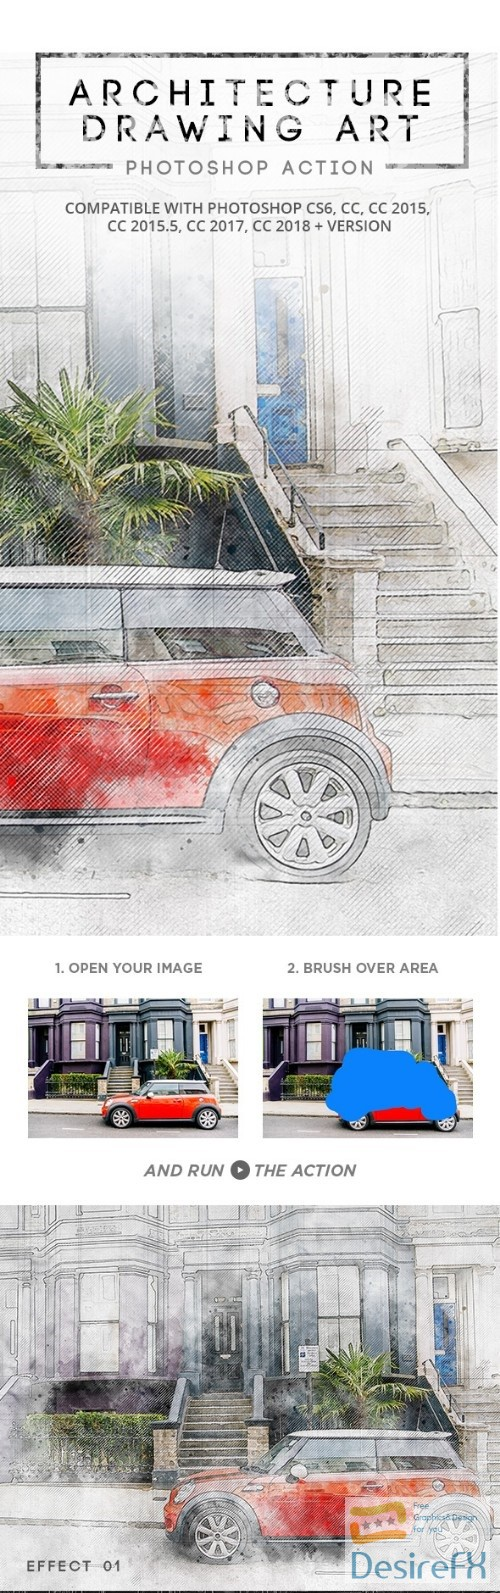 Architecture Drawing Art - Photoshop Action 22345479